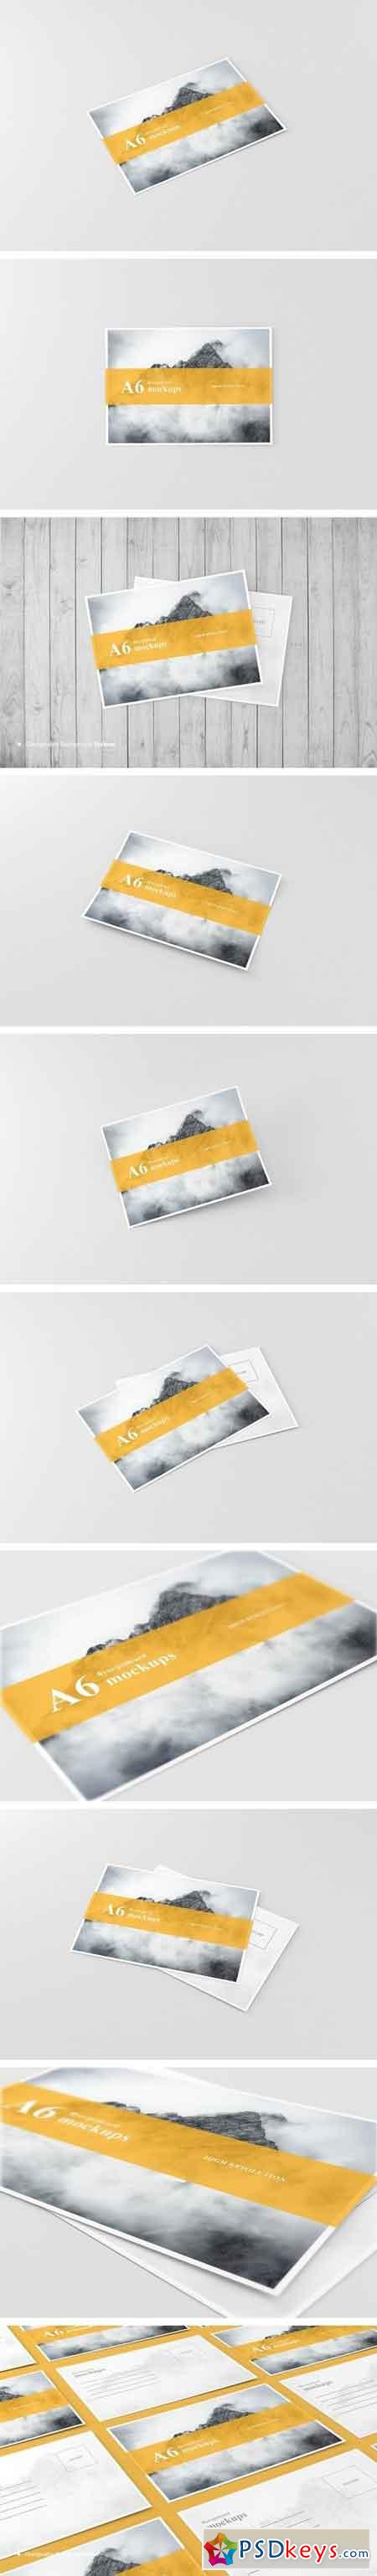 A6 Flyer Postcard Mockup 1541516 Free Download Photoshop Vector